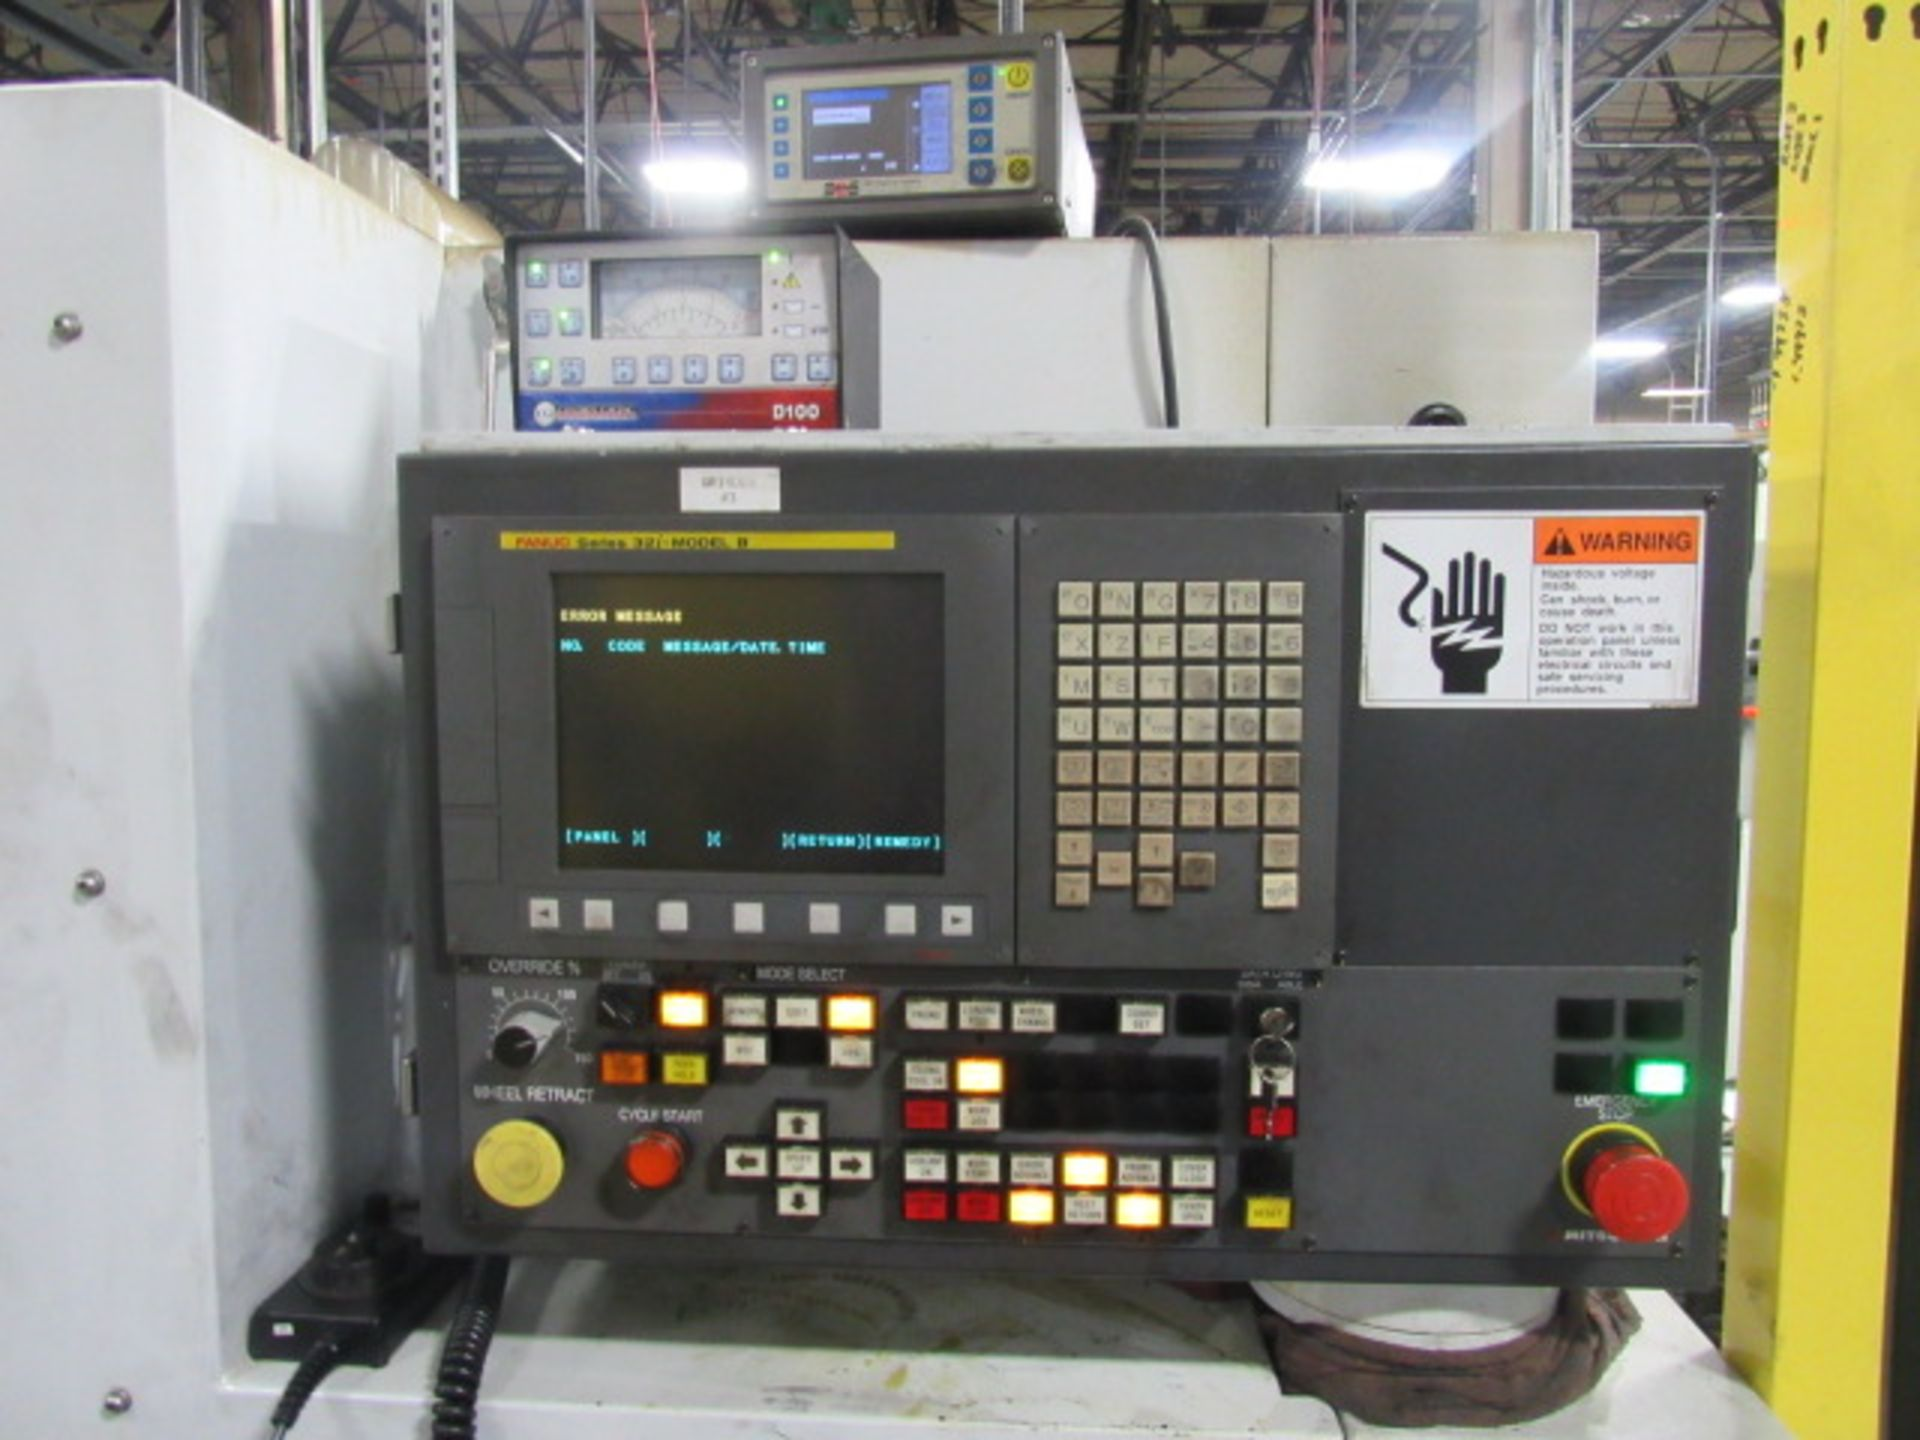 MITSUBISHI PD32-50P CNC STRAIGHT CYLINDRICAL GRINDER, NEW 2013, Fanuc Series 32i-B CNC Control, Rotary Dresser, SBS Auto Wheel Balancing, Lateral Locating (Shoulder Gauge)